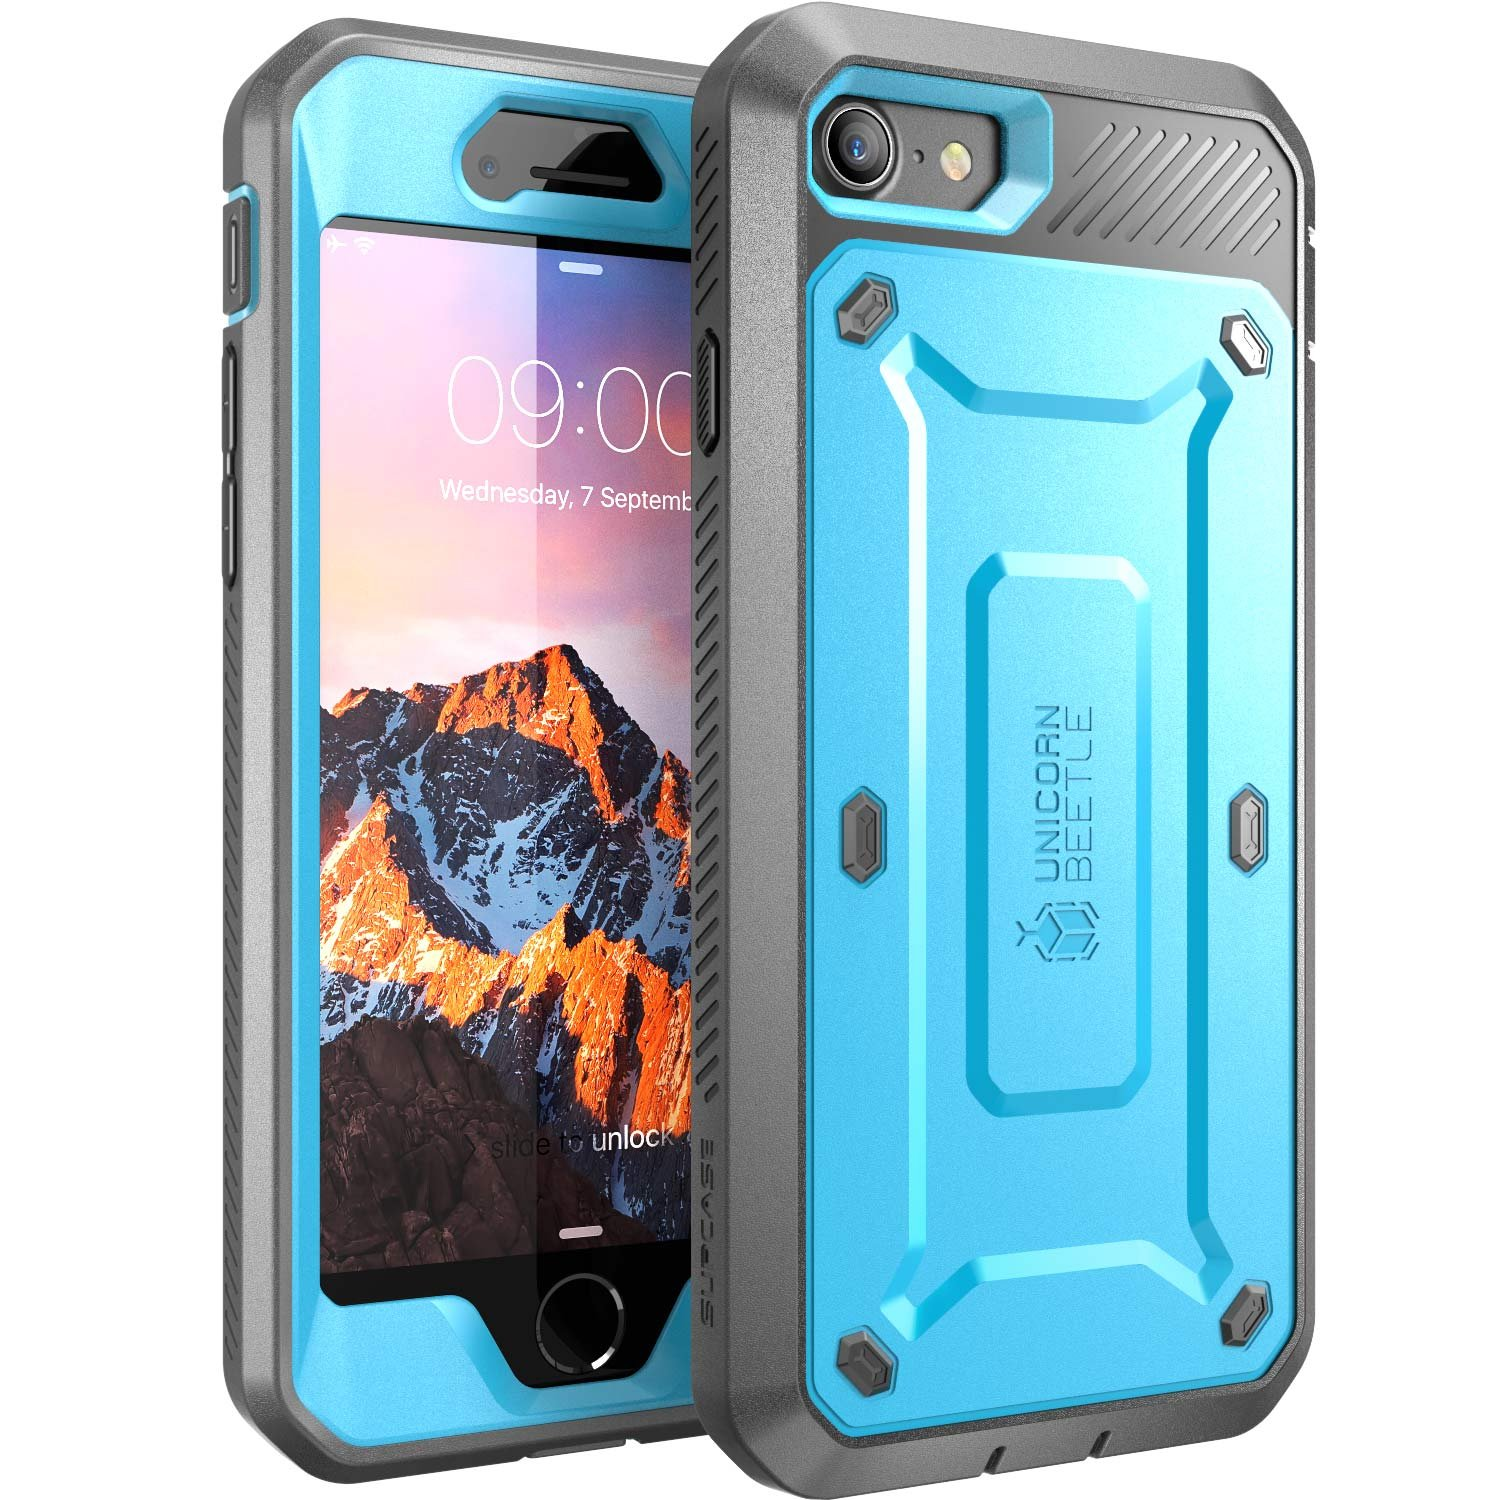 iPhone 8 Case, SUPCASE Full-body Rugged Holster Case with Built-in Screen Protector for Apple iPhone 7 2016 / iPhone 8 (2017 Release), Unicorn Beetle PRO Series - Retail Package SUPCASE Cases SUP-iPhone7s-UBPro-White/Gray